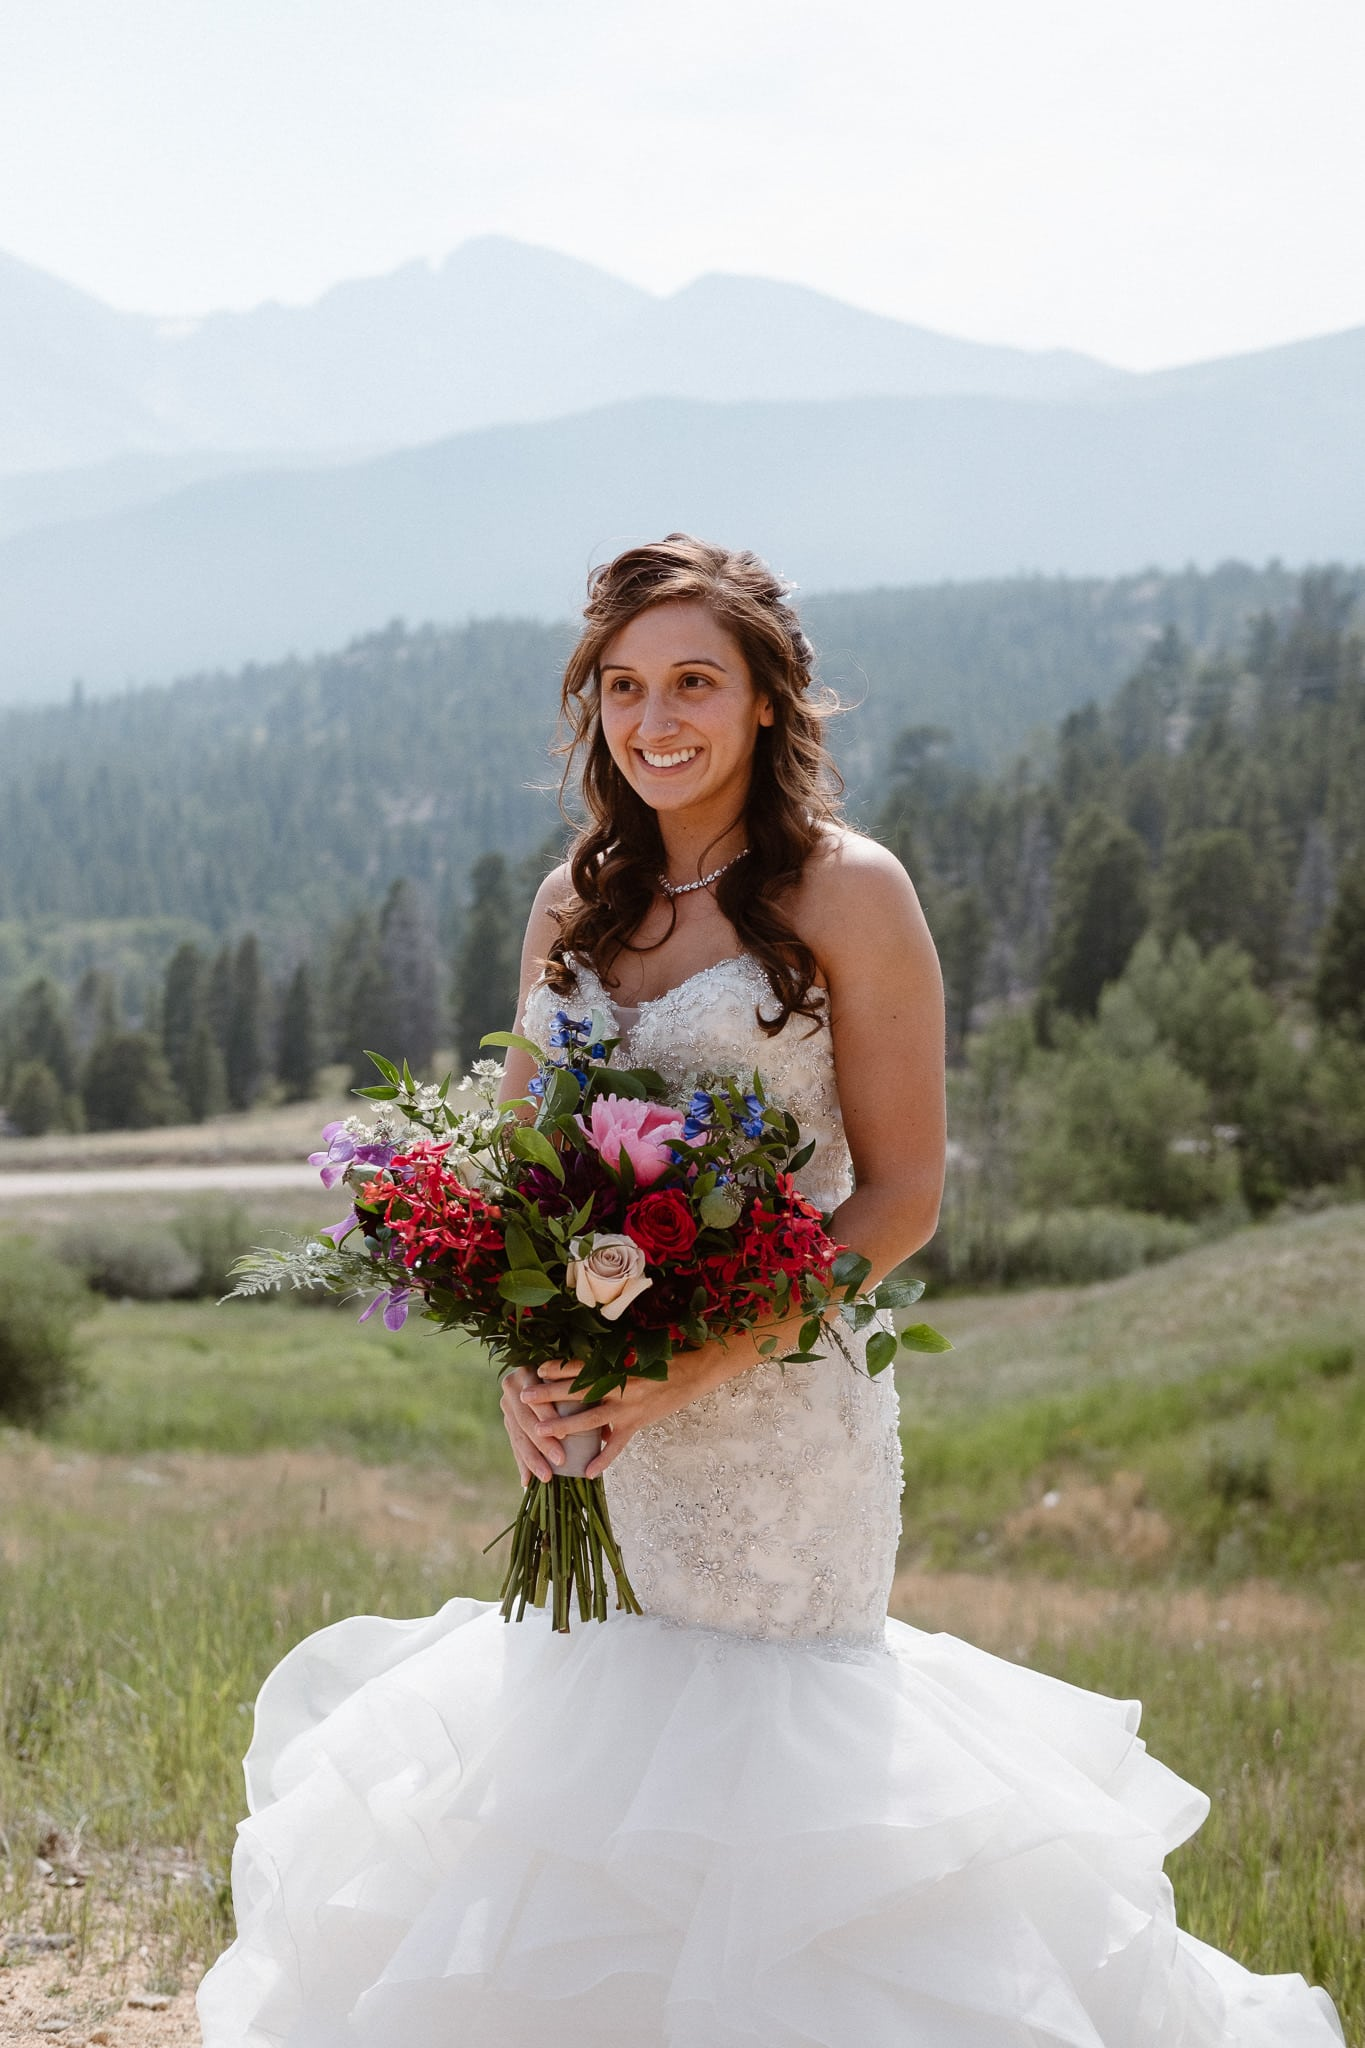 Bride in mermaid wedding dress with large gem colored bouquet.